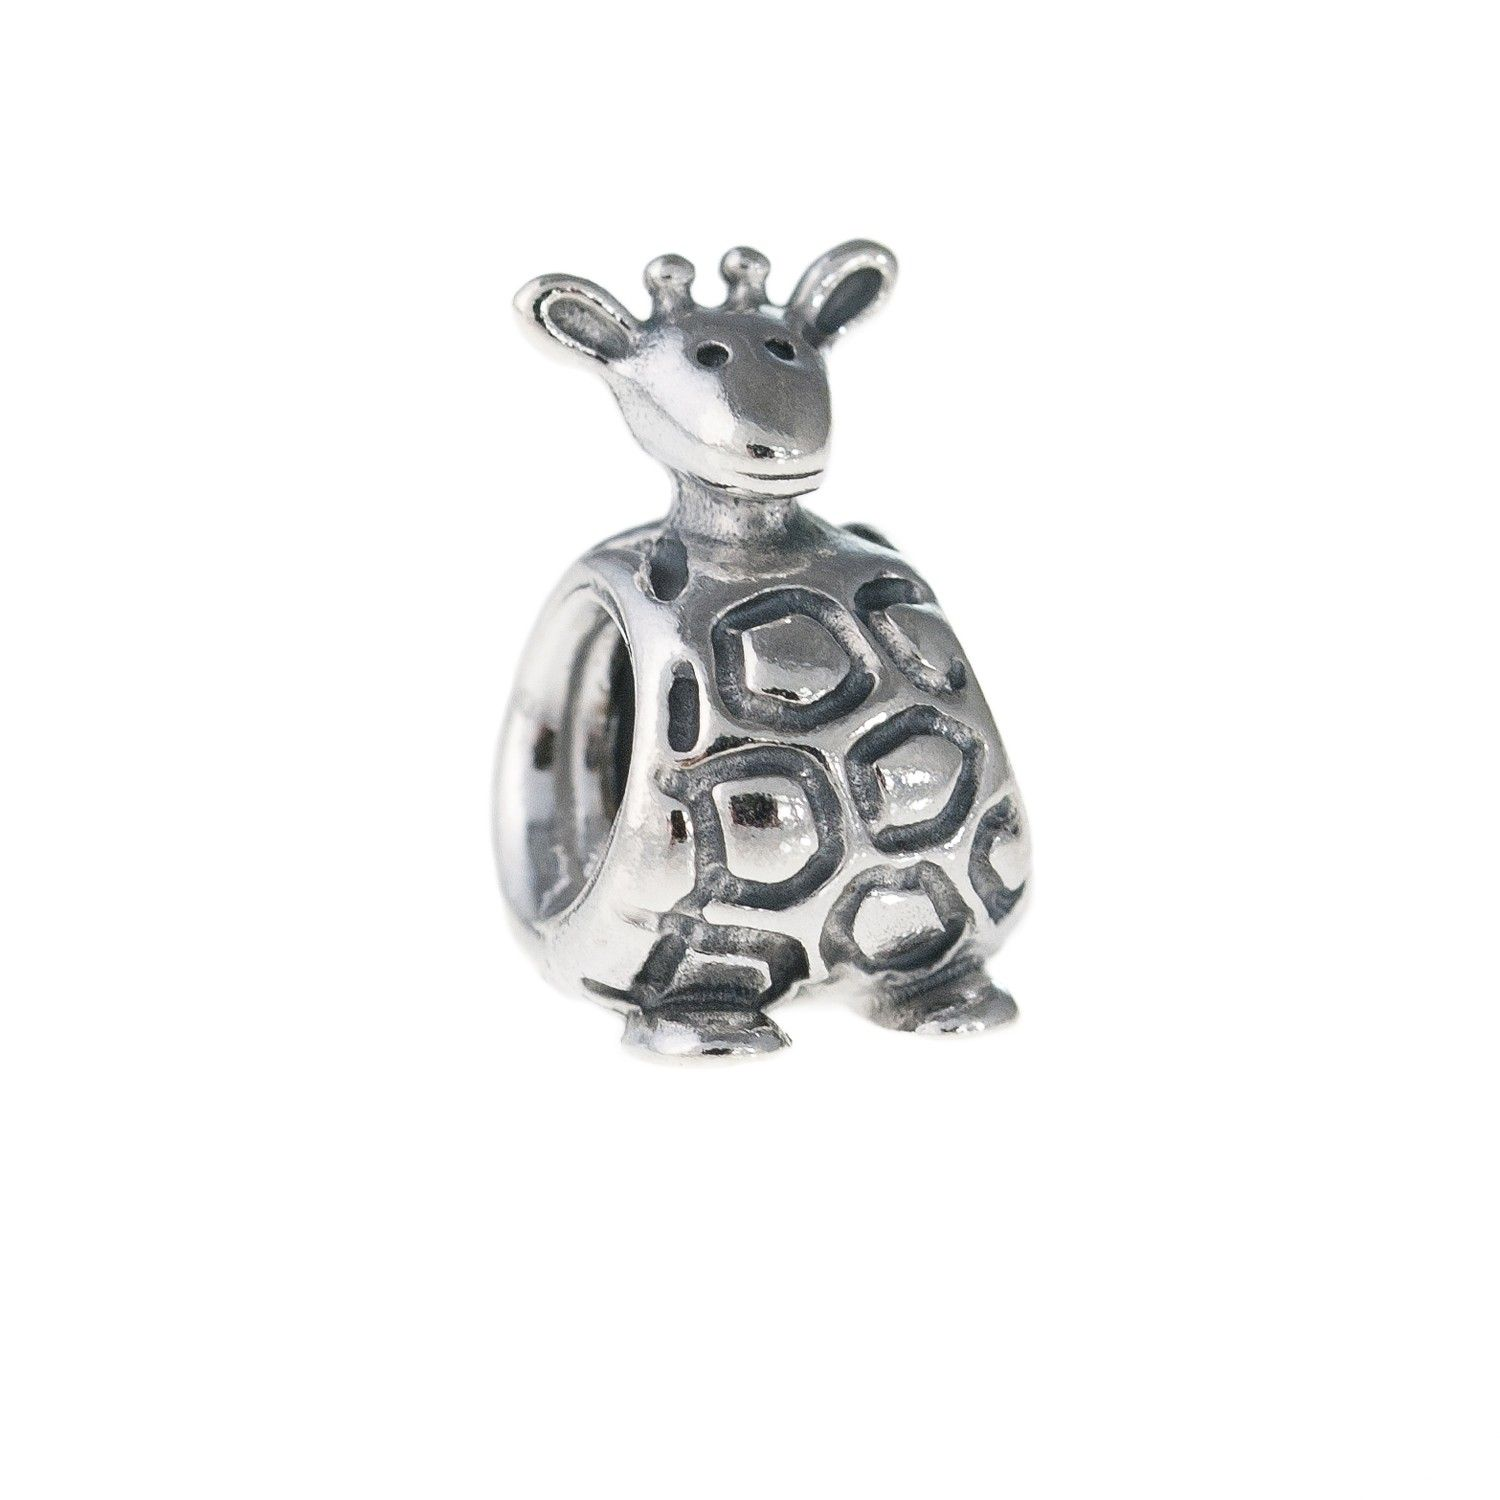 6251f7f91 ... where to buy pandora sterling silver giraffe charm item number 790274  today 25.00 if it was ...